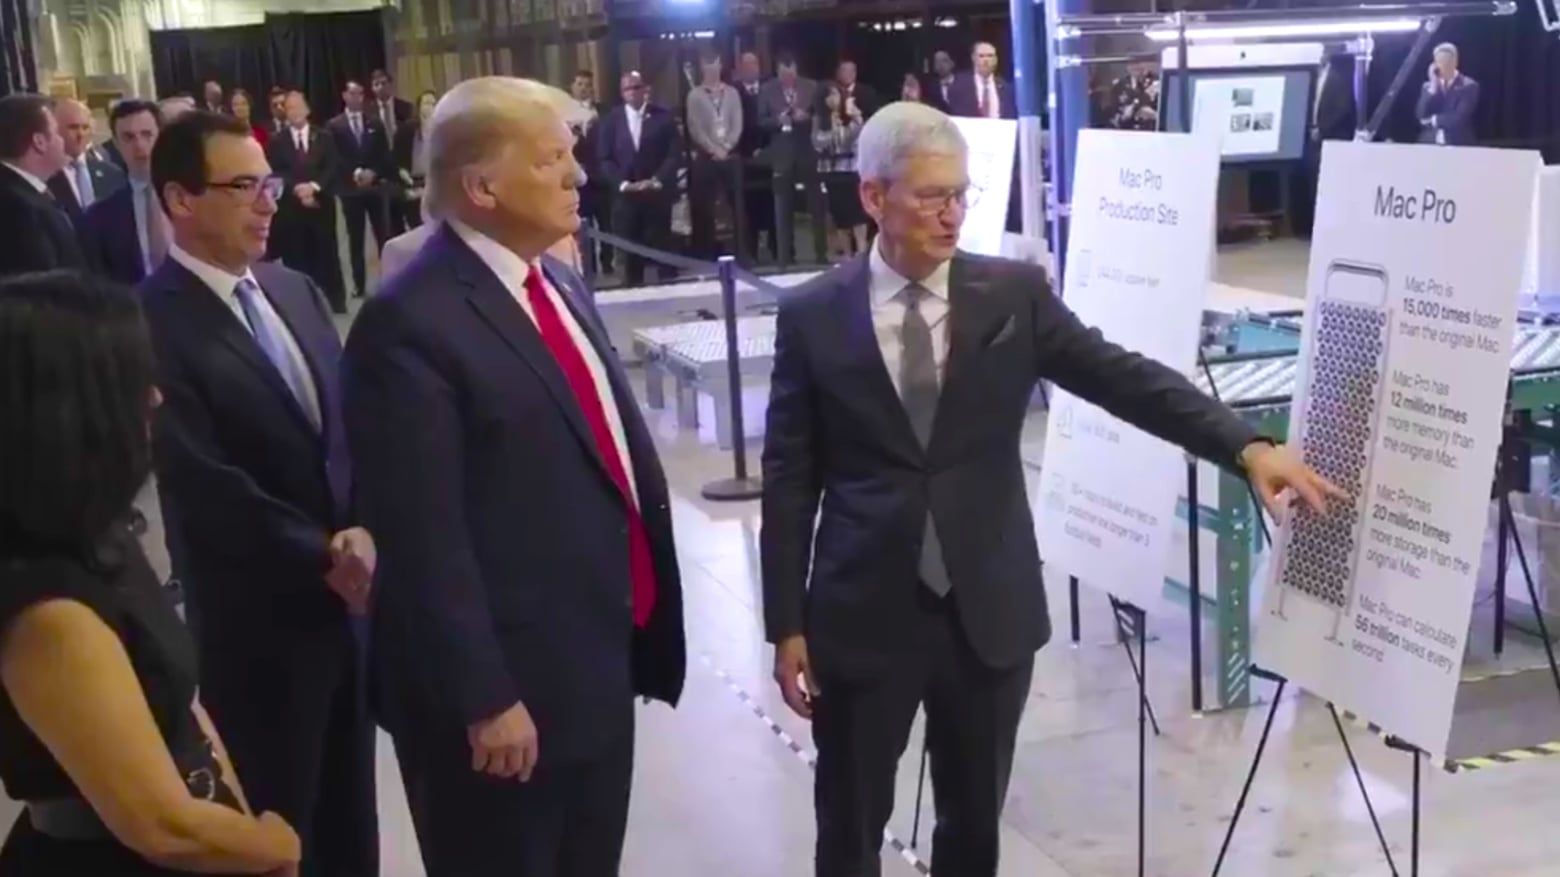 Apple CEO and President Trump talk about the Mac Pro